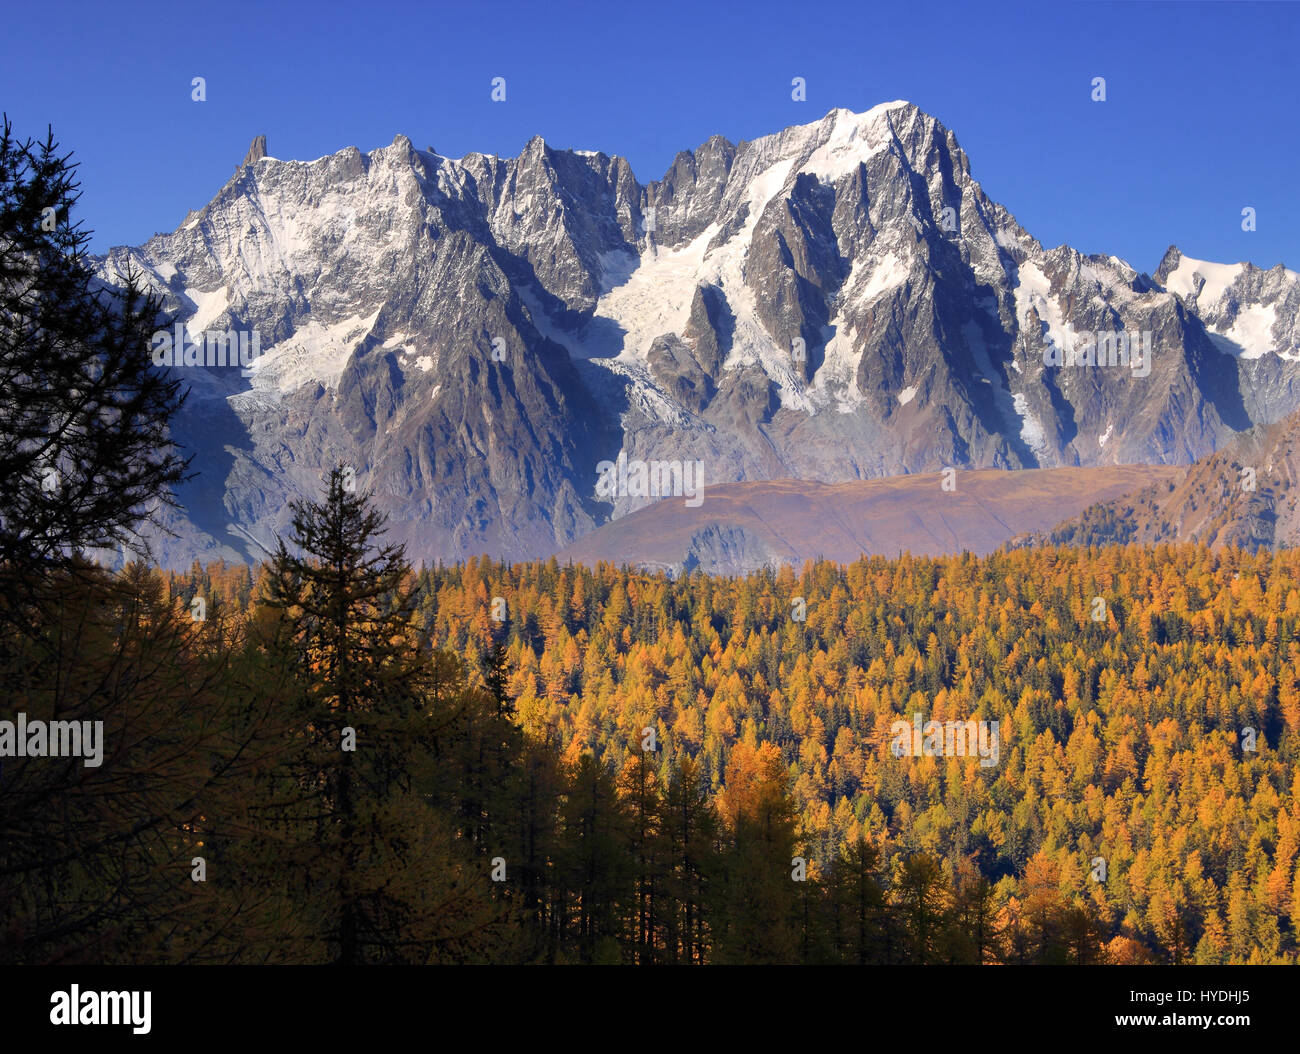 A view of the majestic northeastern portion of the Monte Bianco/Mont Blanc - from Dente del Gigante/Dent du Geant - Stock Image